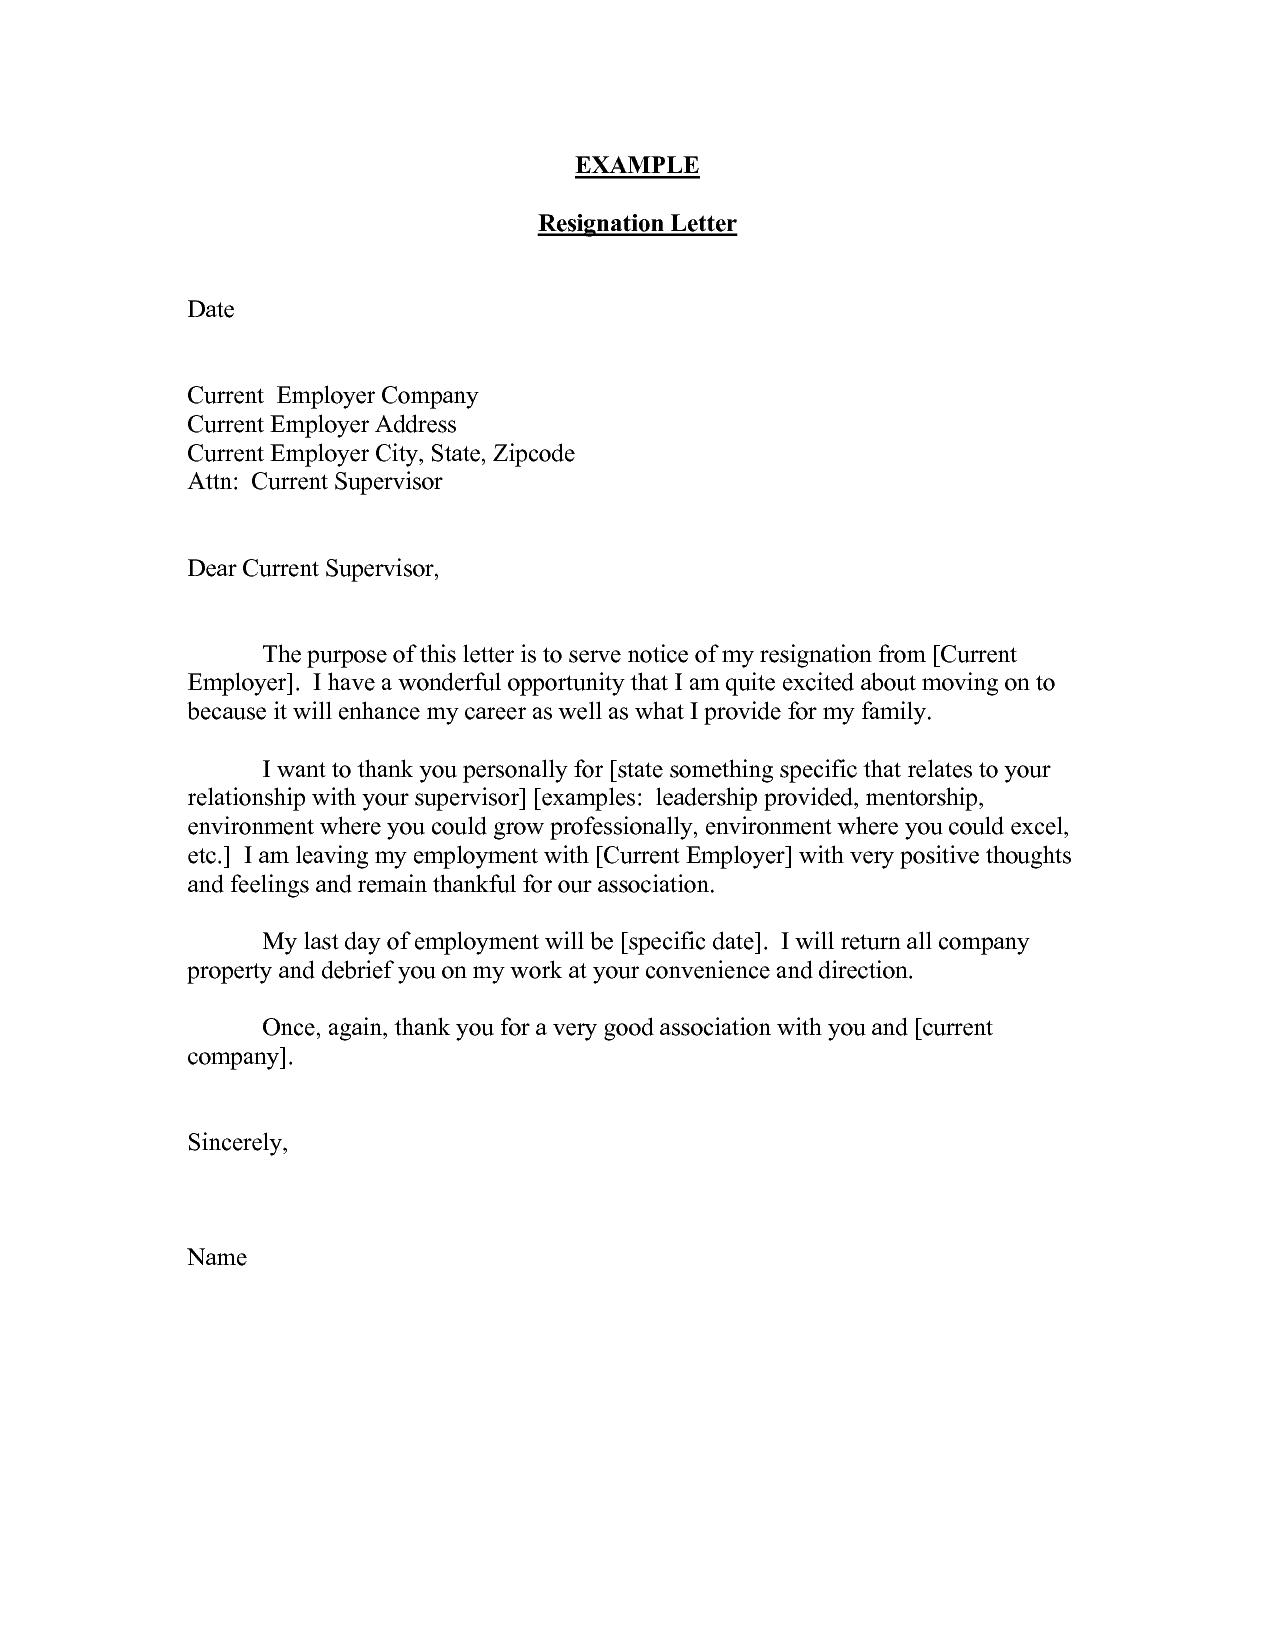 Resignation Letter Sample Doc Resume And Letter Samplewriting A